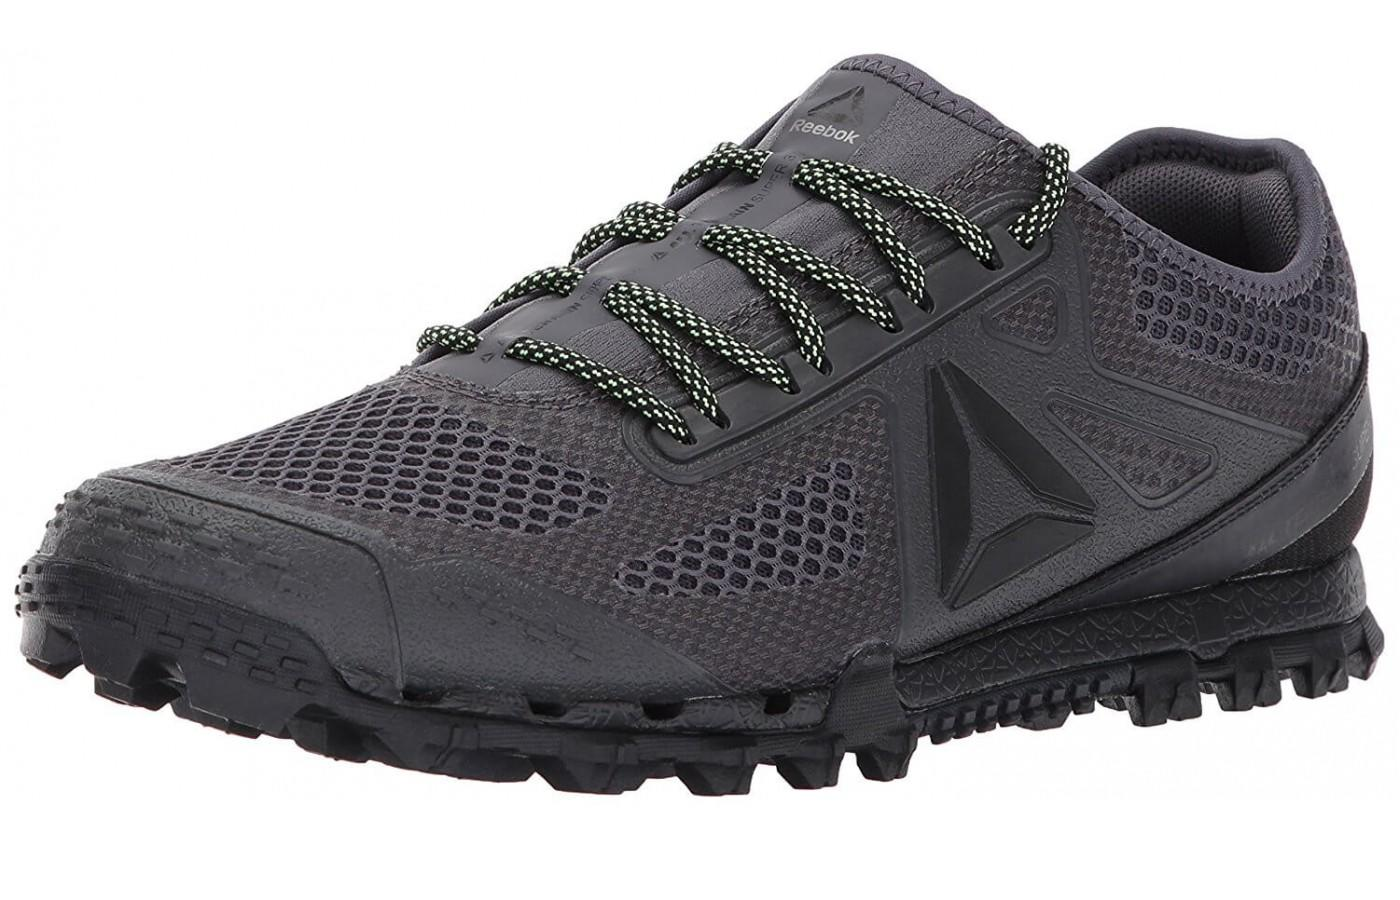 5d641d12a The Reebok All Terrain Super 3.0 is designed for obstacle race running.